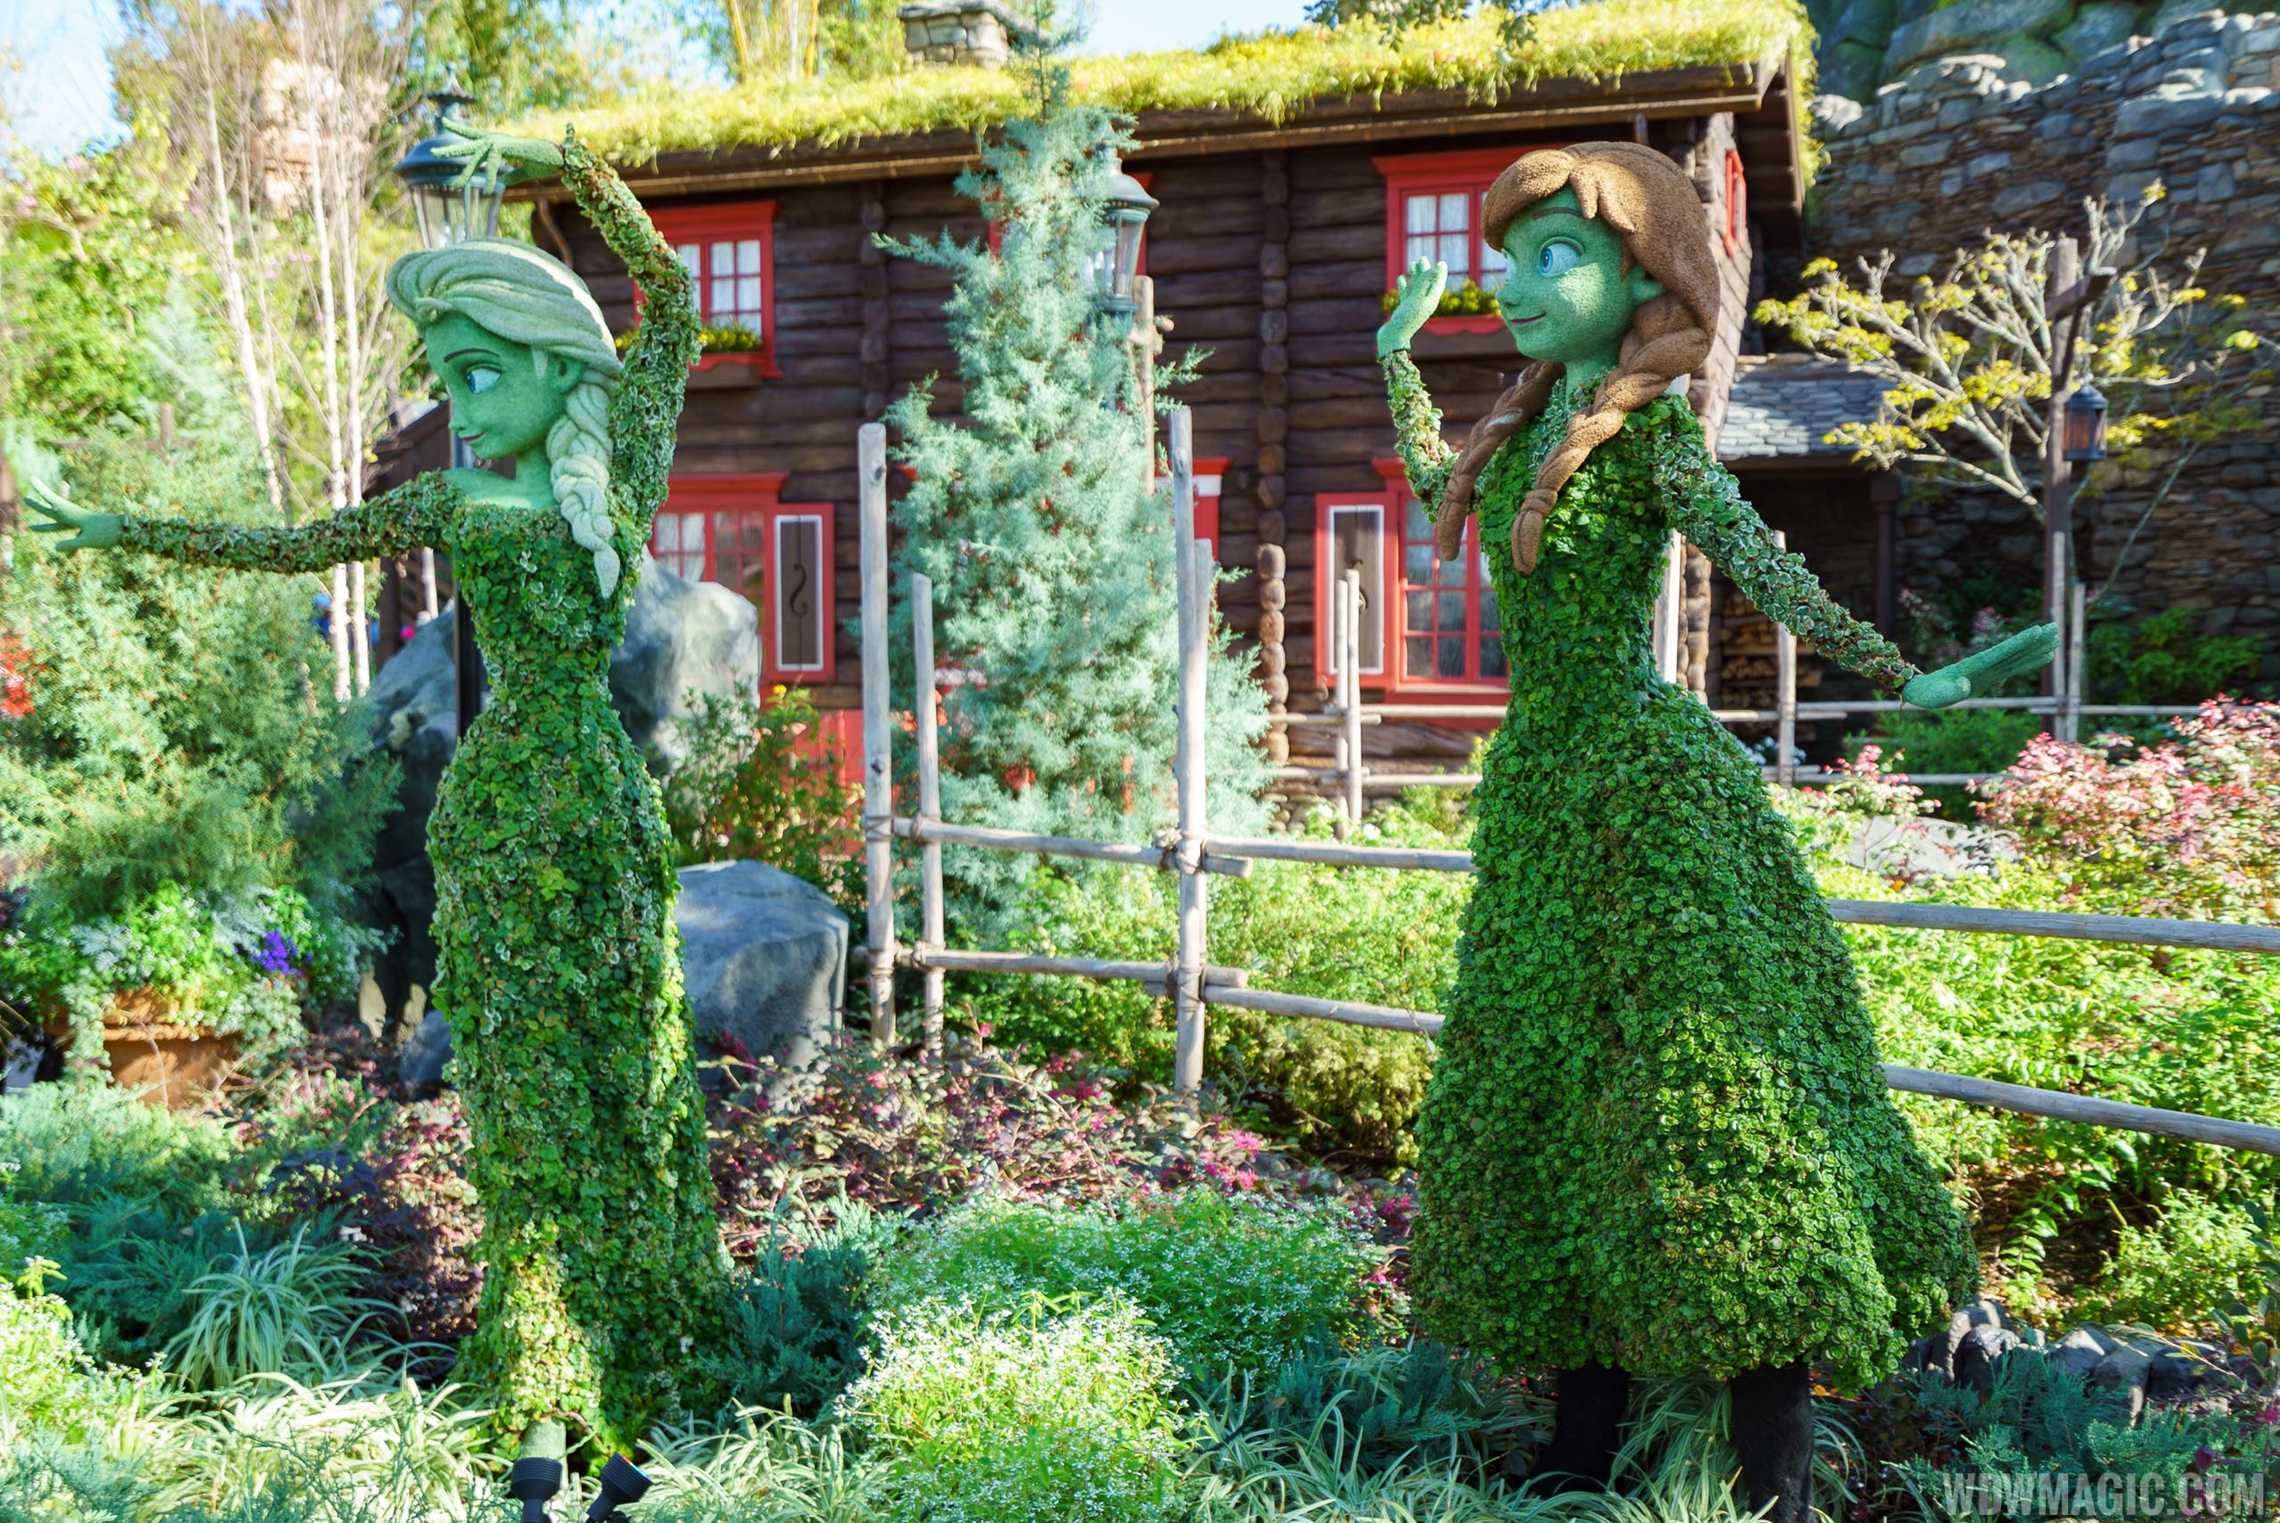 2017 Flower and Garden Festival - Anna and Elsa at the Norway Pavilion